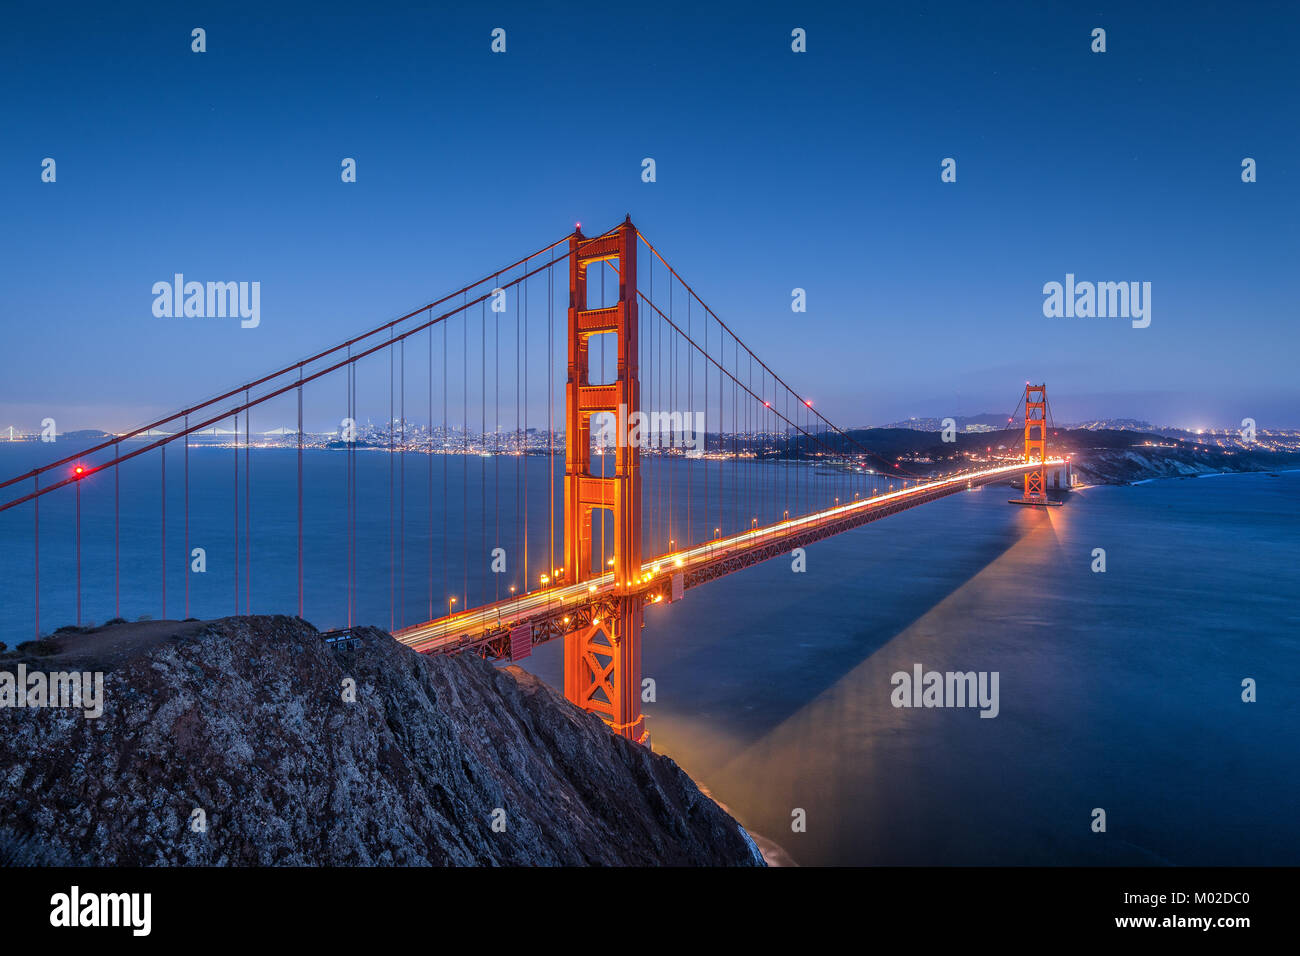 Classic panoramic view of famous Golden Gate Bridge seen from famous Battery Spencer viewpoint in beautiful post - Stock Image